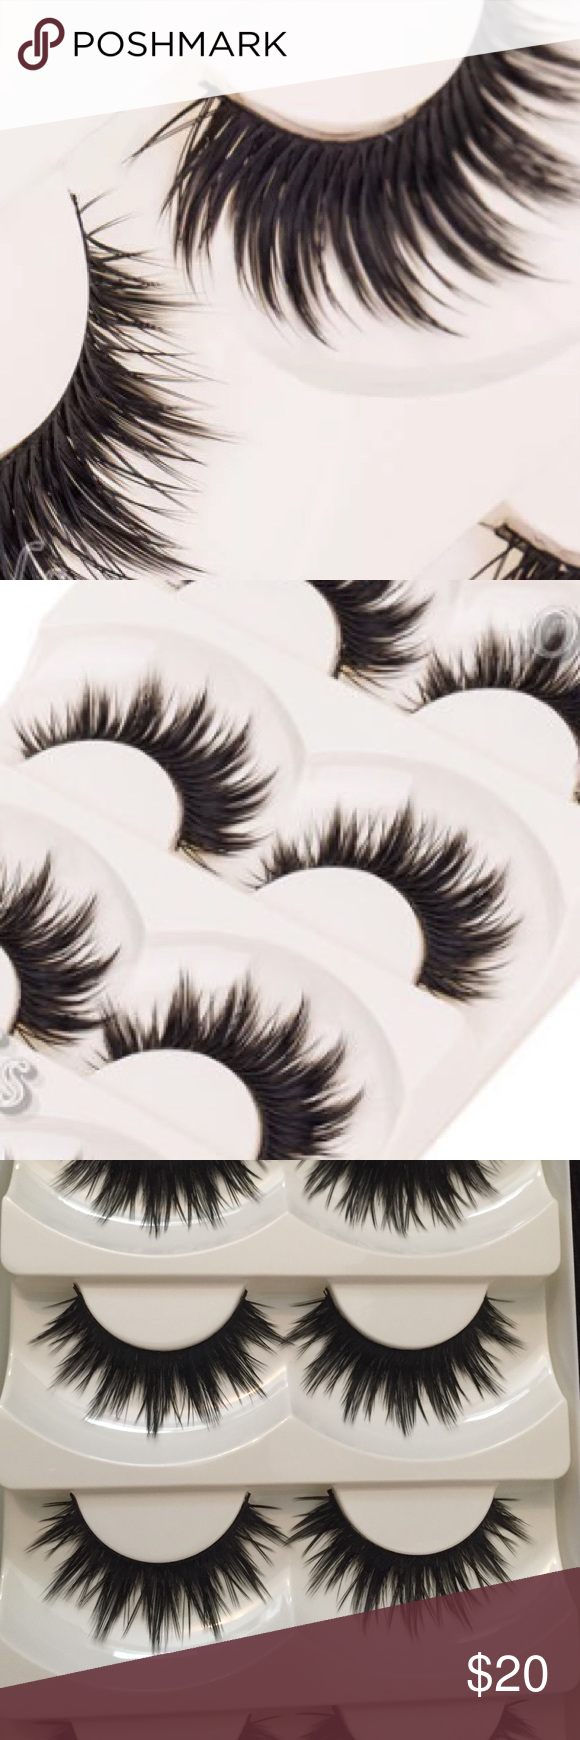 7b338a327c4 Gorgeous magic angel feather false lashes and glue Soft 5 pairs of lashes  (and glue) long, black, thick, natural, homemade lashes.